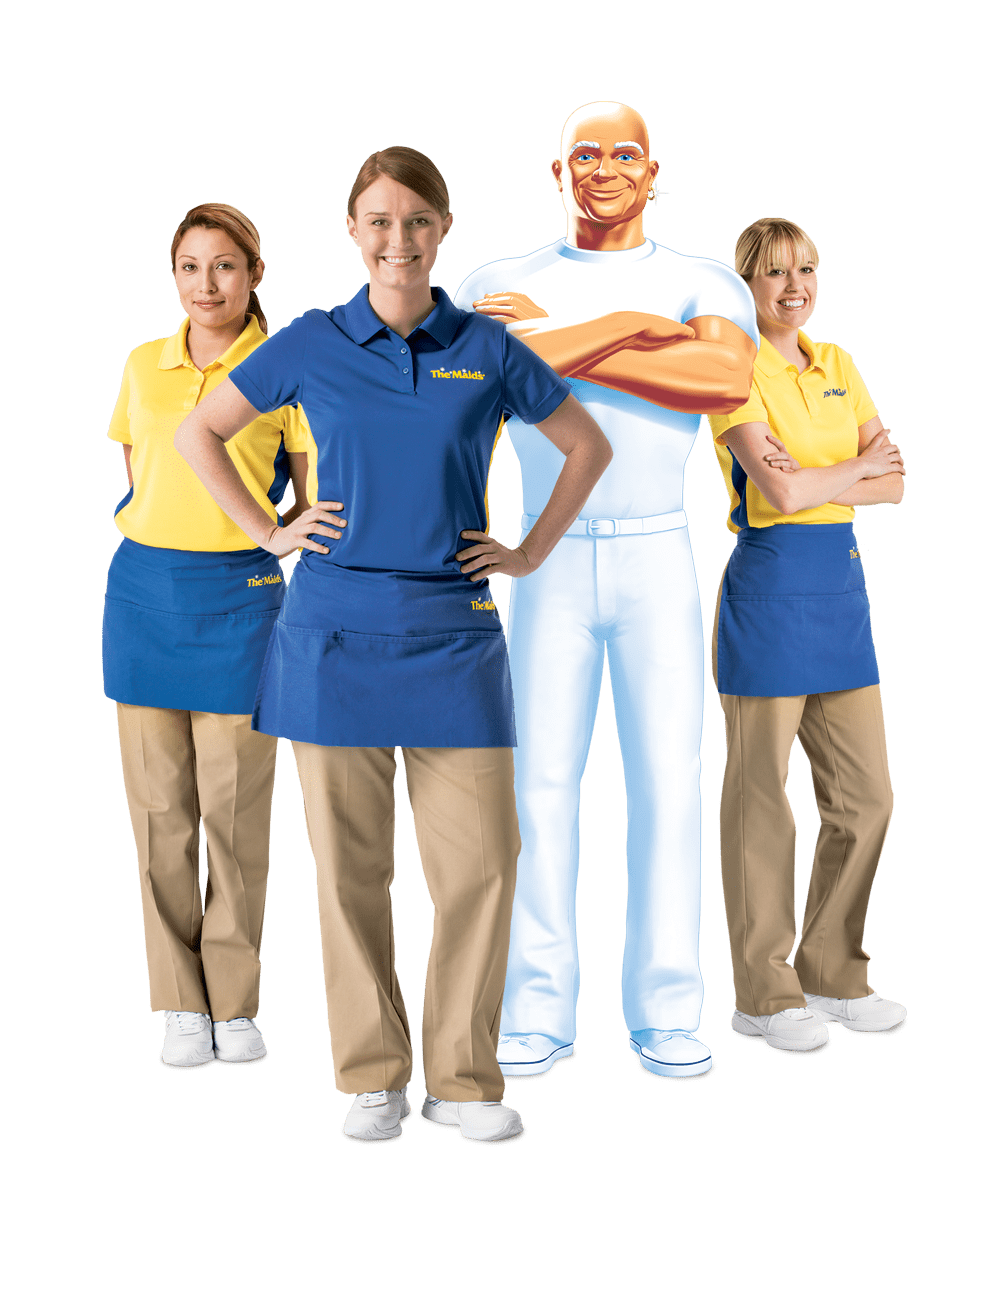 The Maids House Cleaning - The Maids in Central and North Denver Home Cleaning